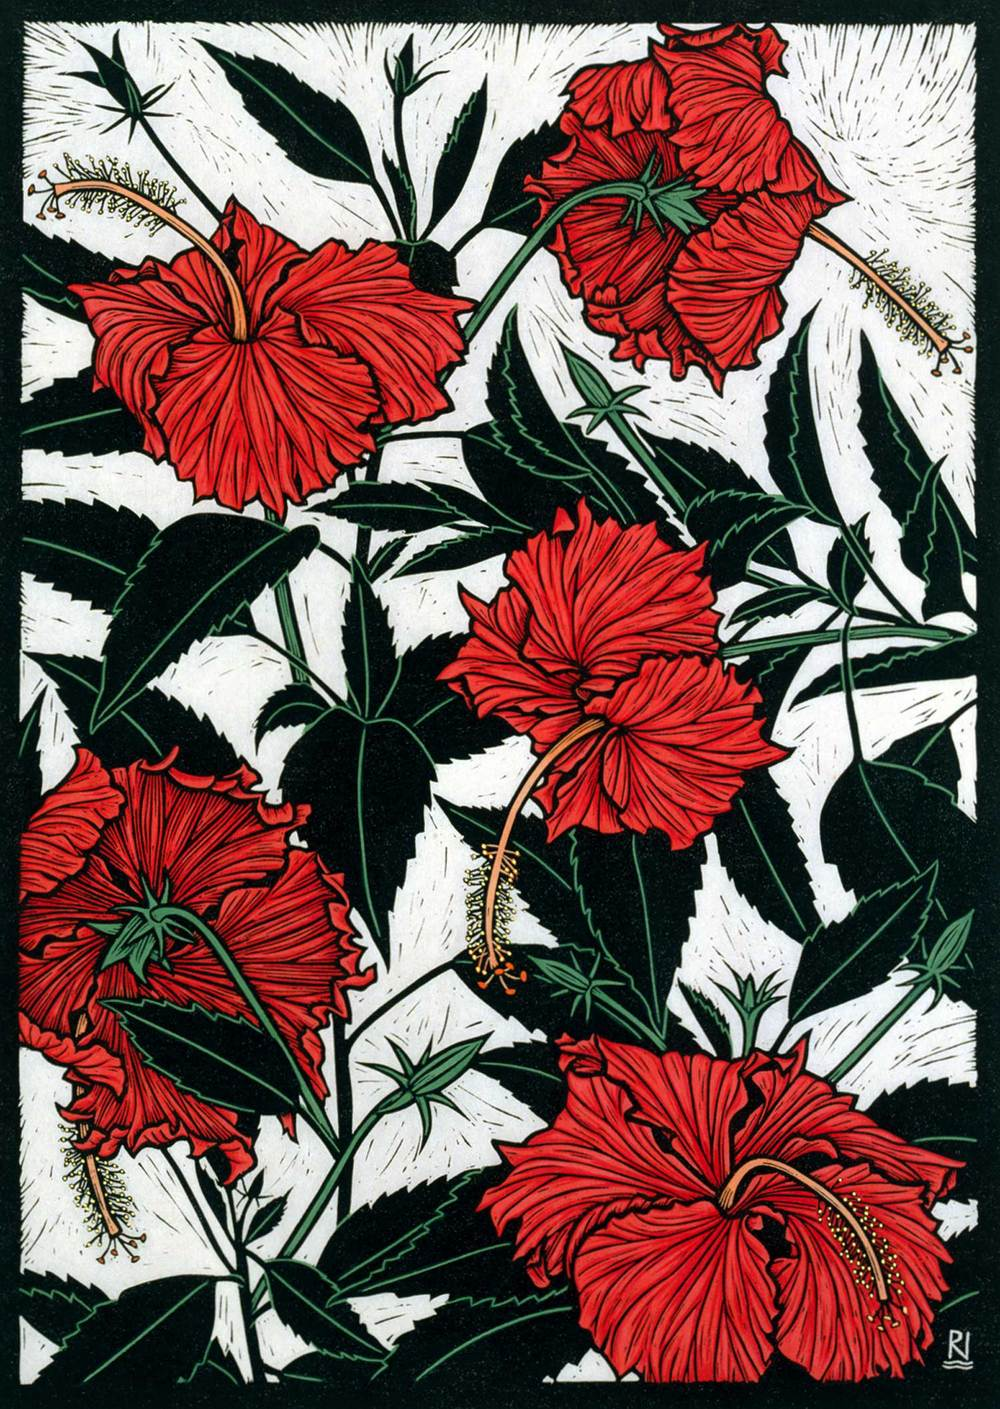 RED HIBISCUS  49 X 35 CM    EDITION OF 50  HAND COLOURED LINOCUT ON HANDMADE JAPANESE PAPER  $1,050